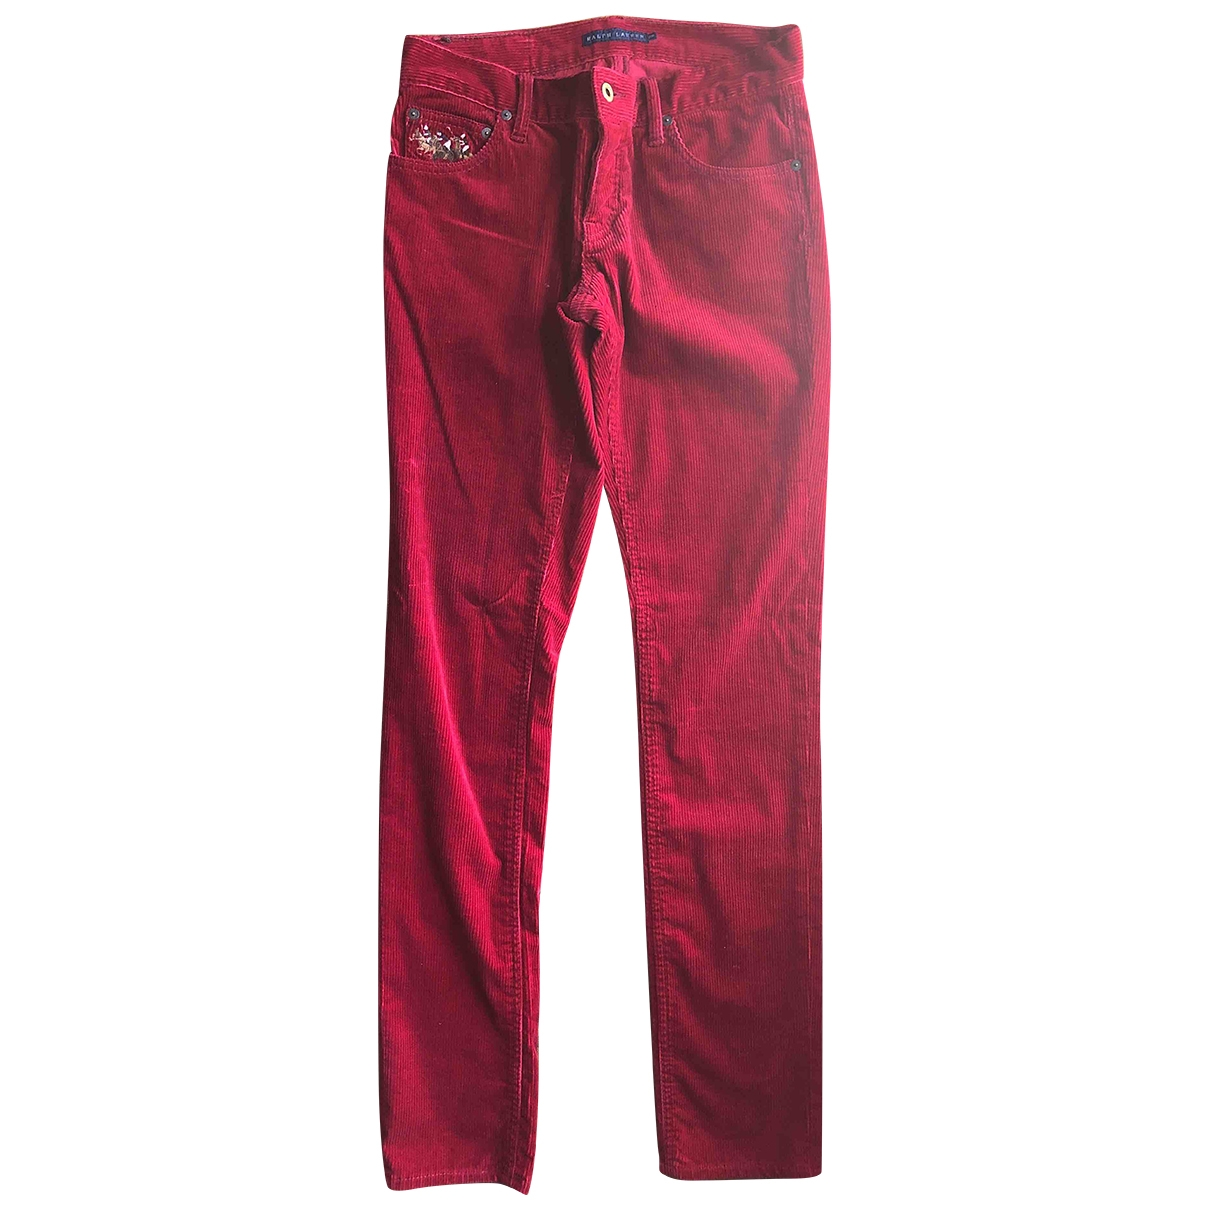 Ralph Lauren \N Burgundy Cotton Trousers for Women S International